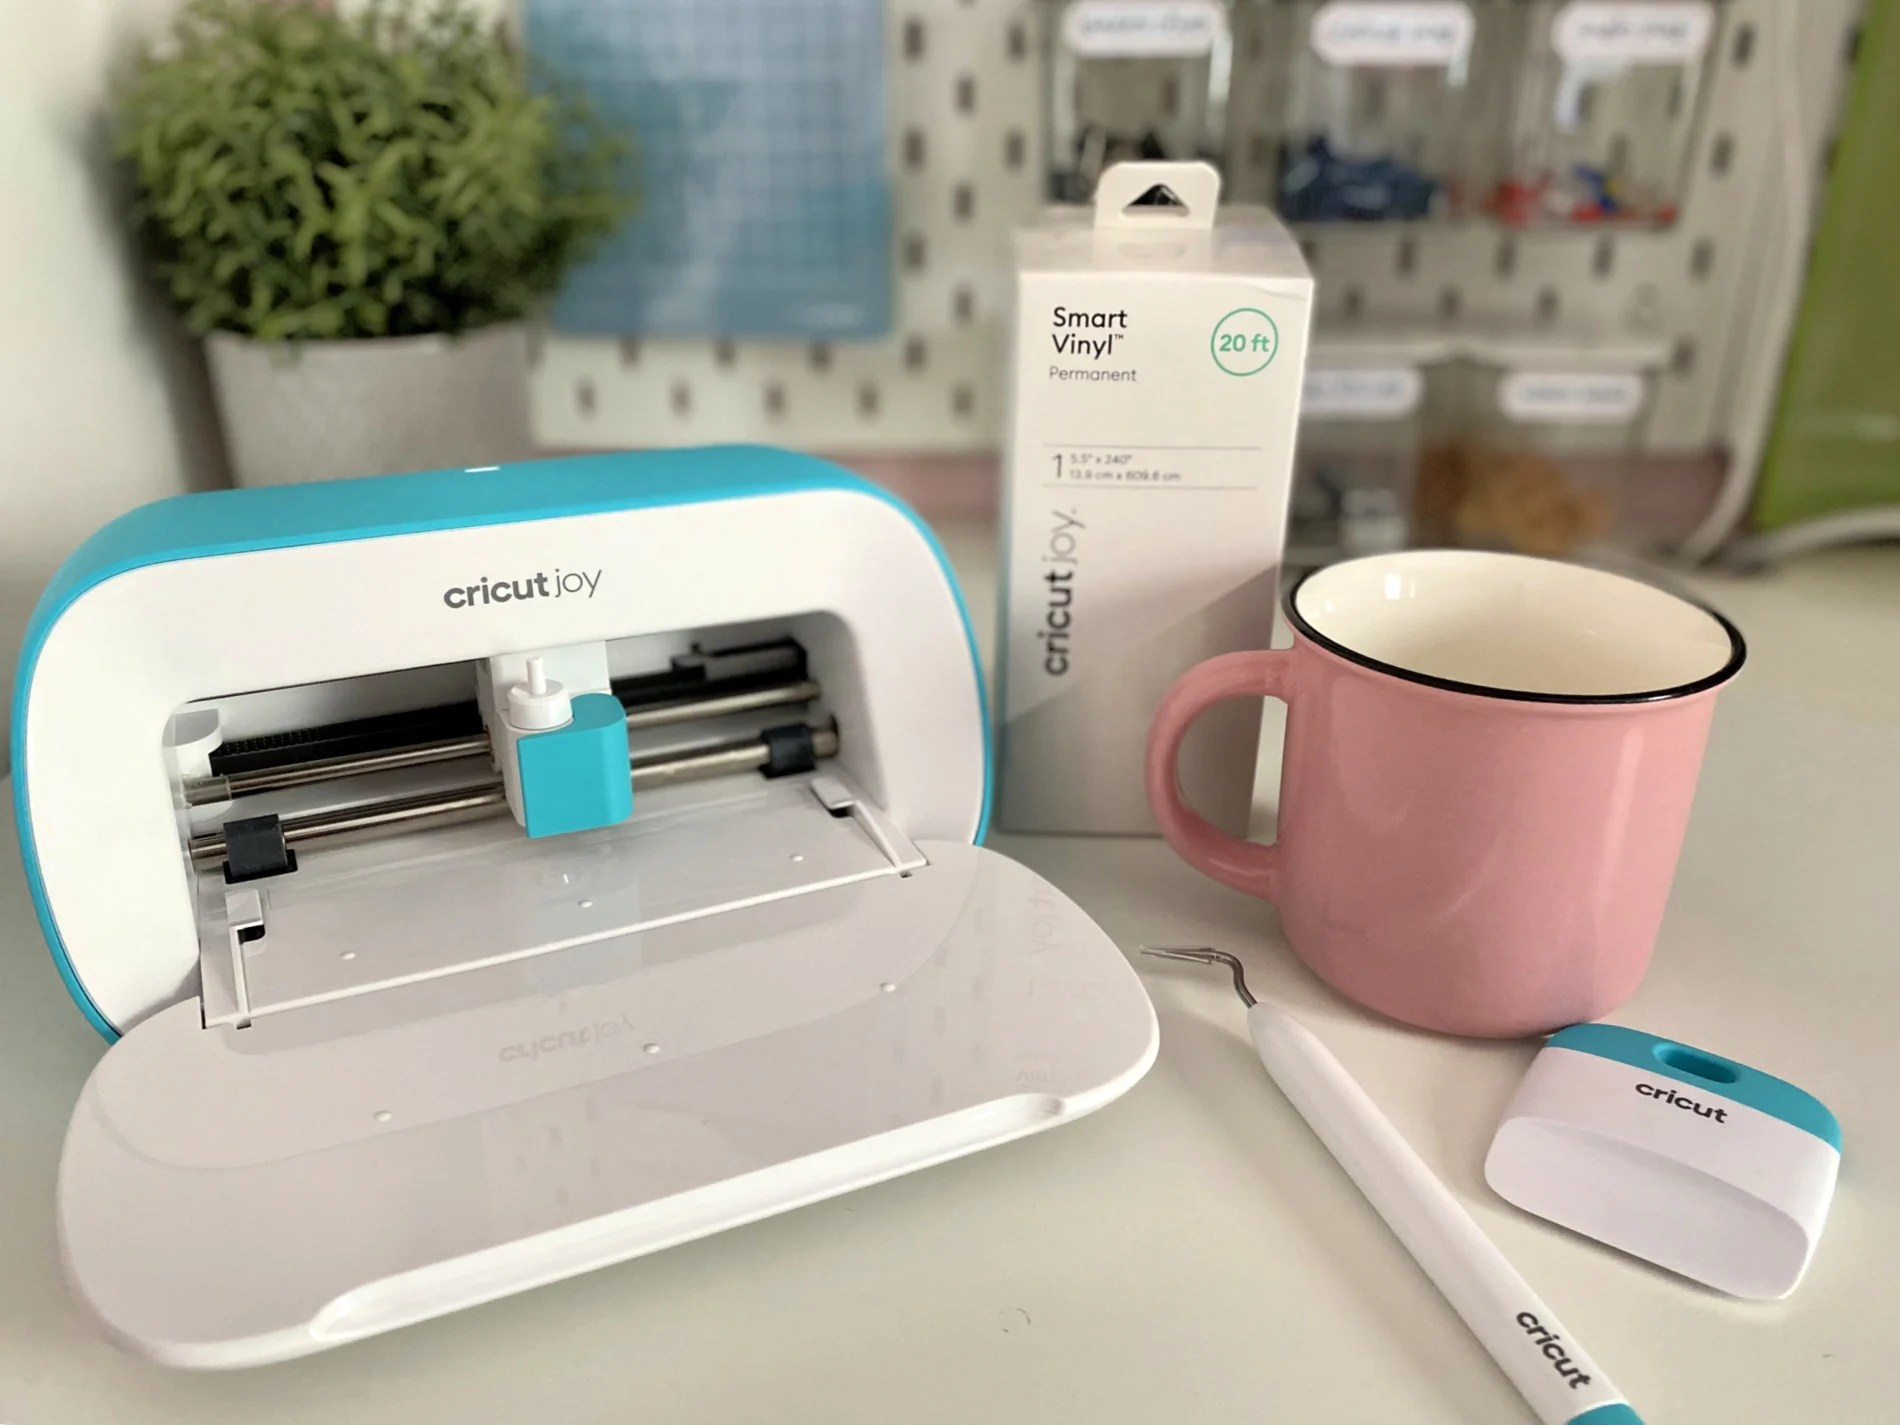 Cricut Joy with Cricut Joy™ Smart Vinyl™, Transfer Tape, and Cricut Joy Tools.